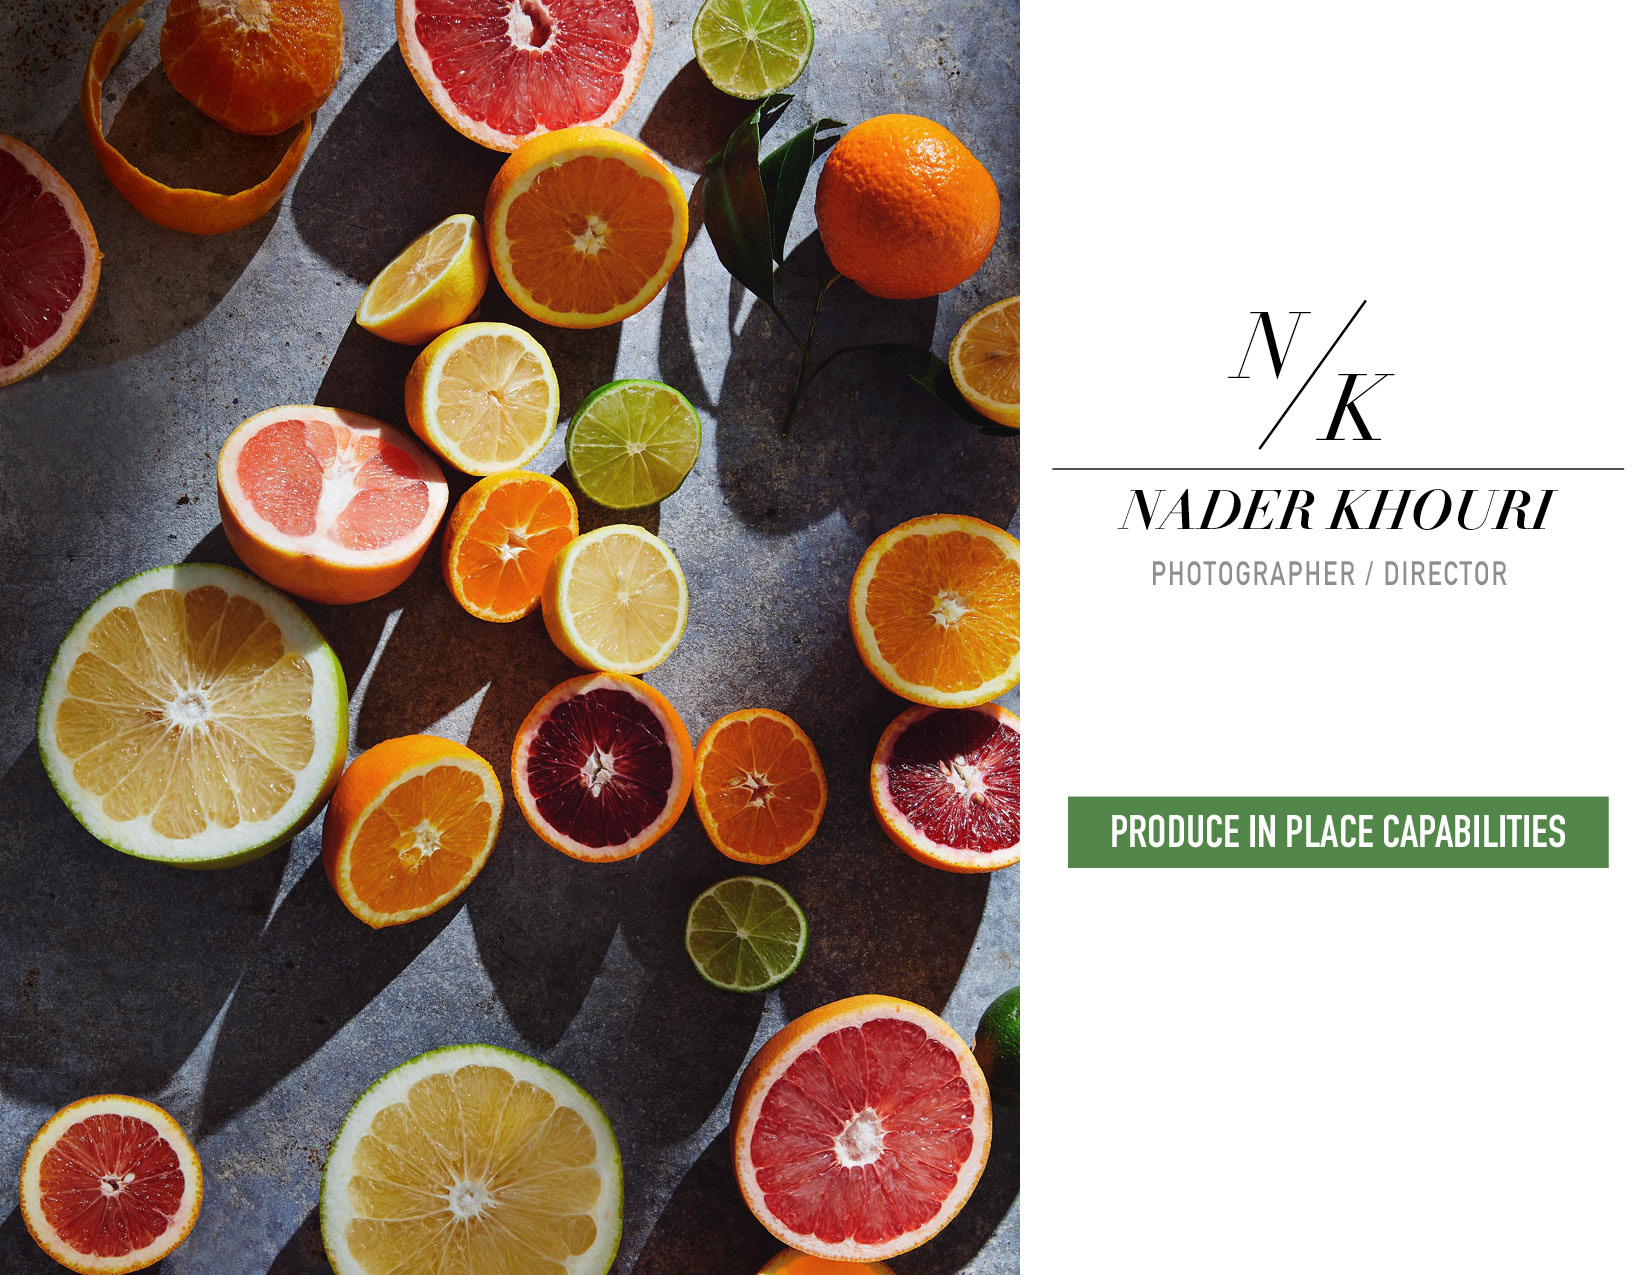 ProduceinPlace-NaderKhouri